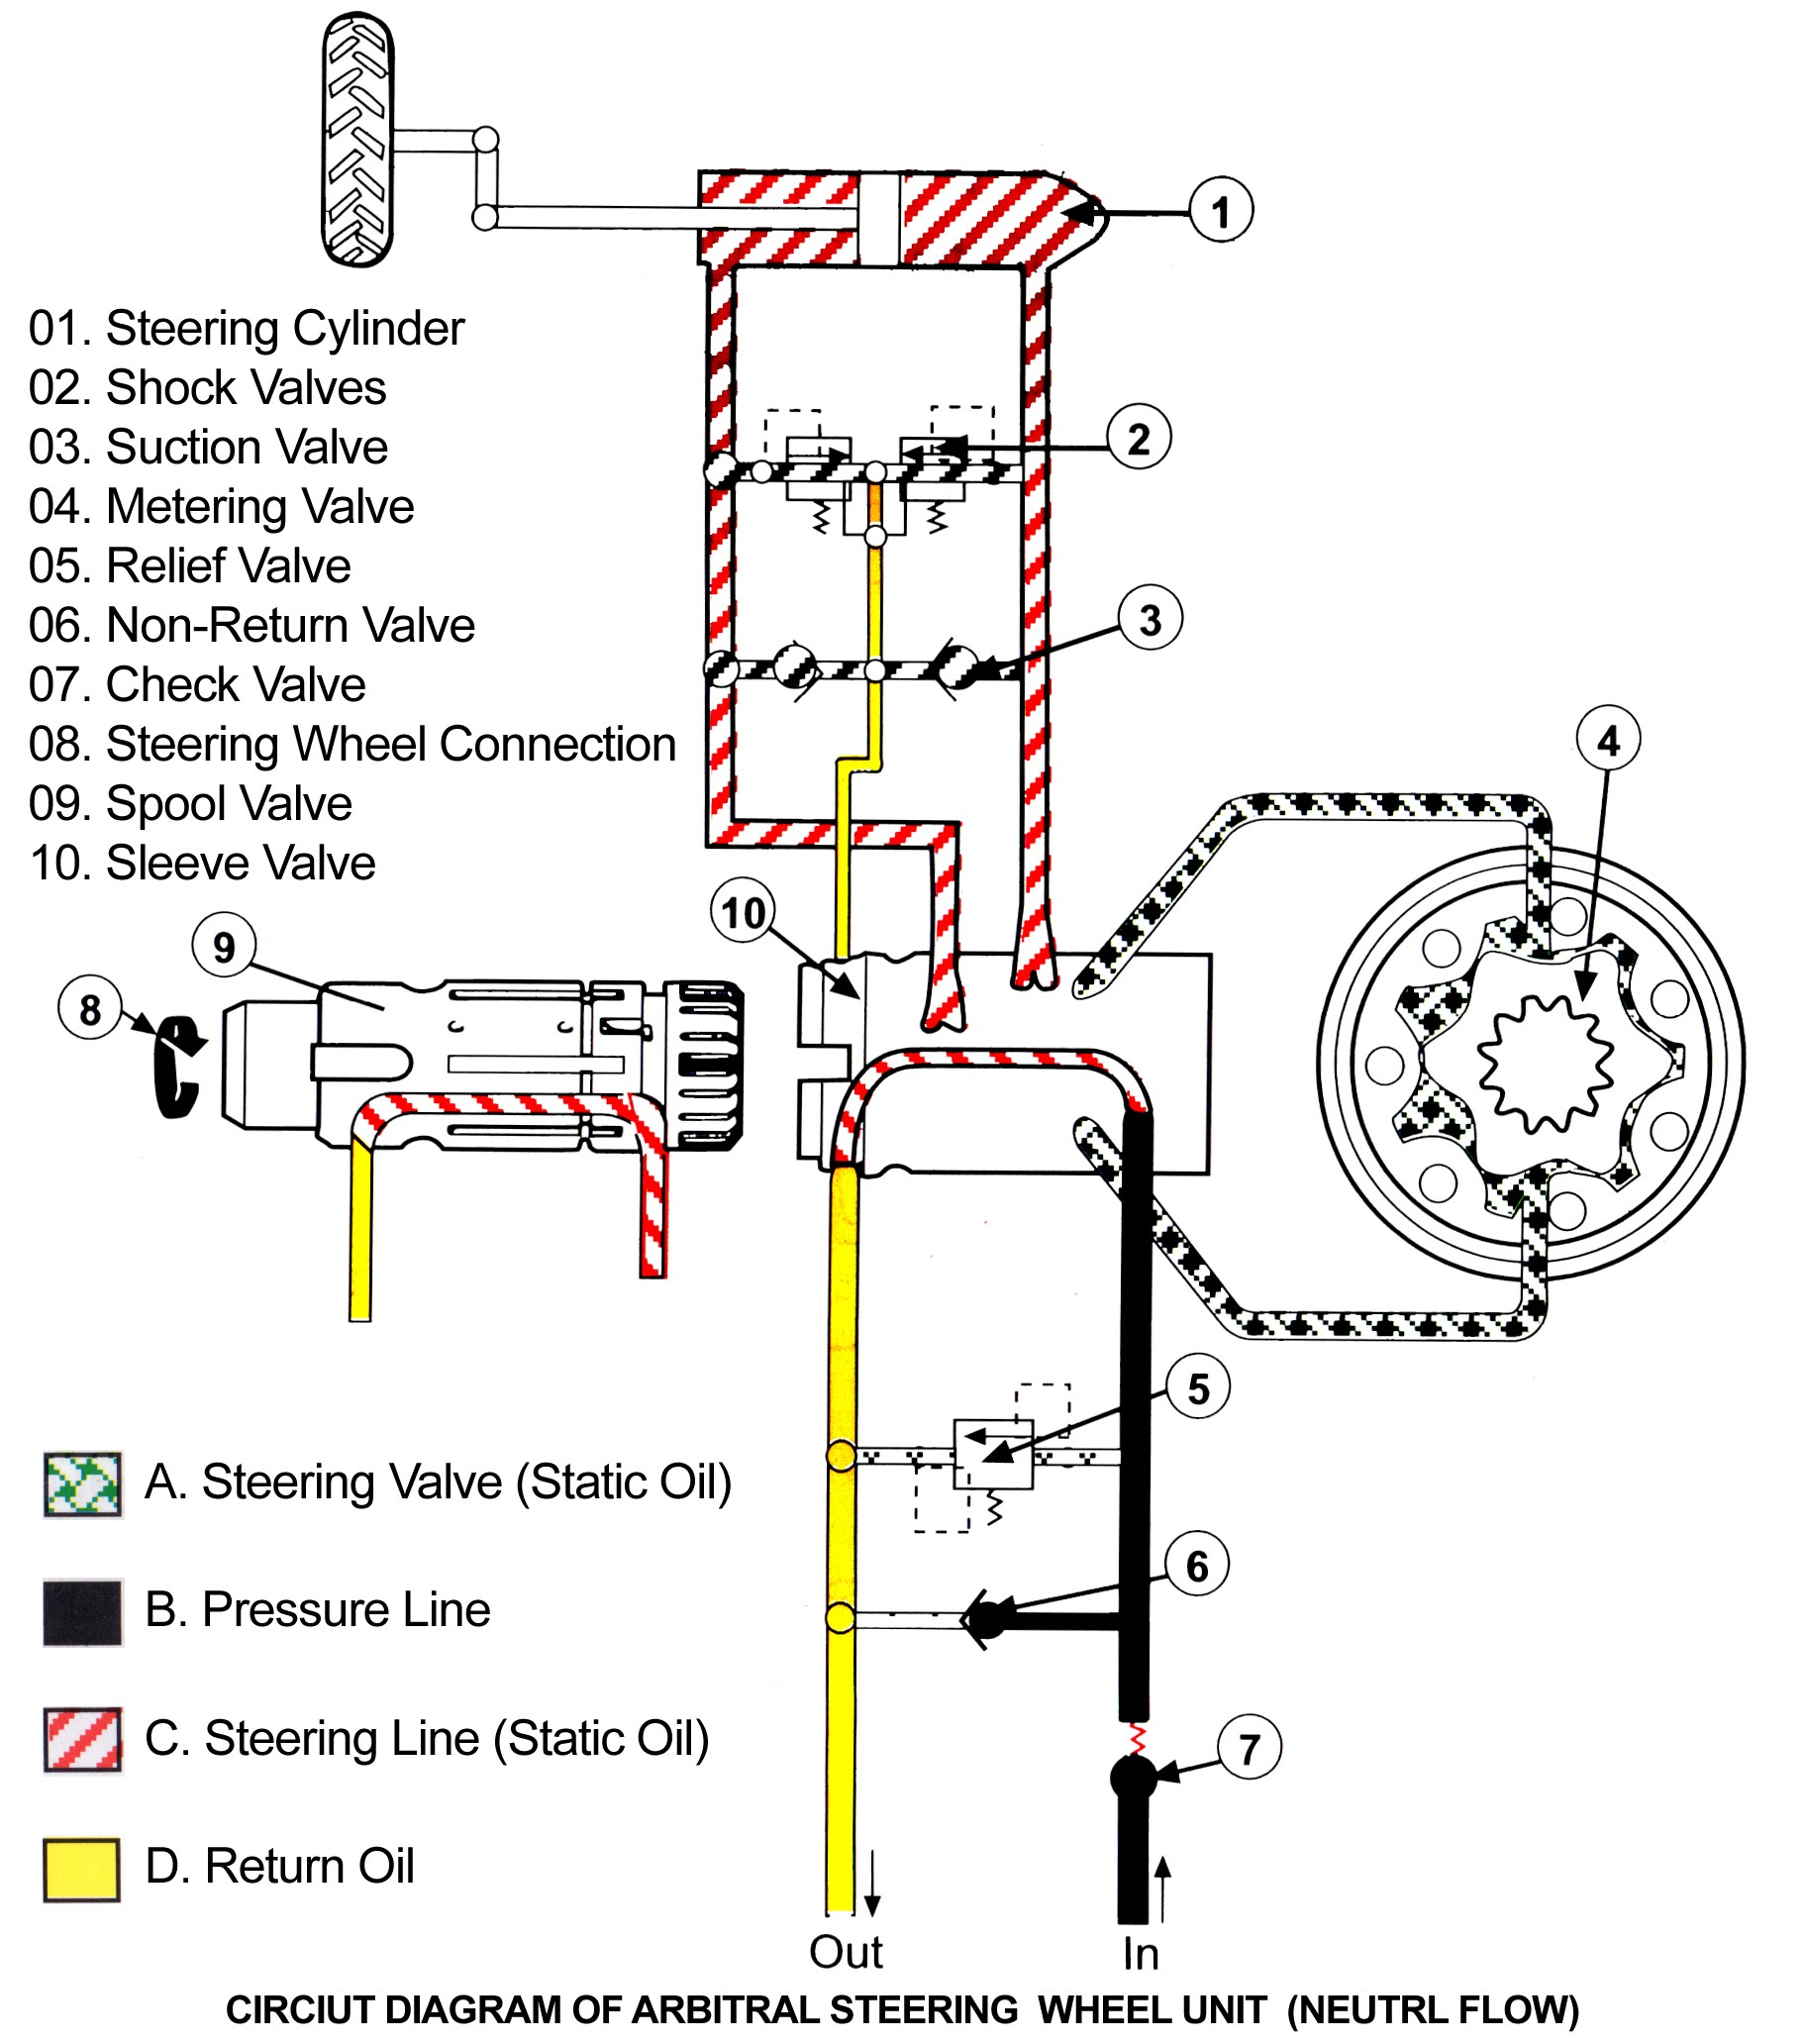 Hydraulic Steering Diagram Hydro Static Power Steering System Tractors Pakistan Of Hydraulic Steering Diagram